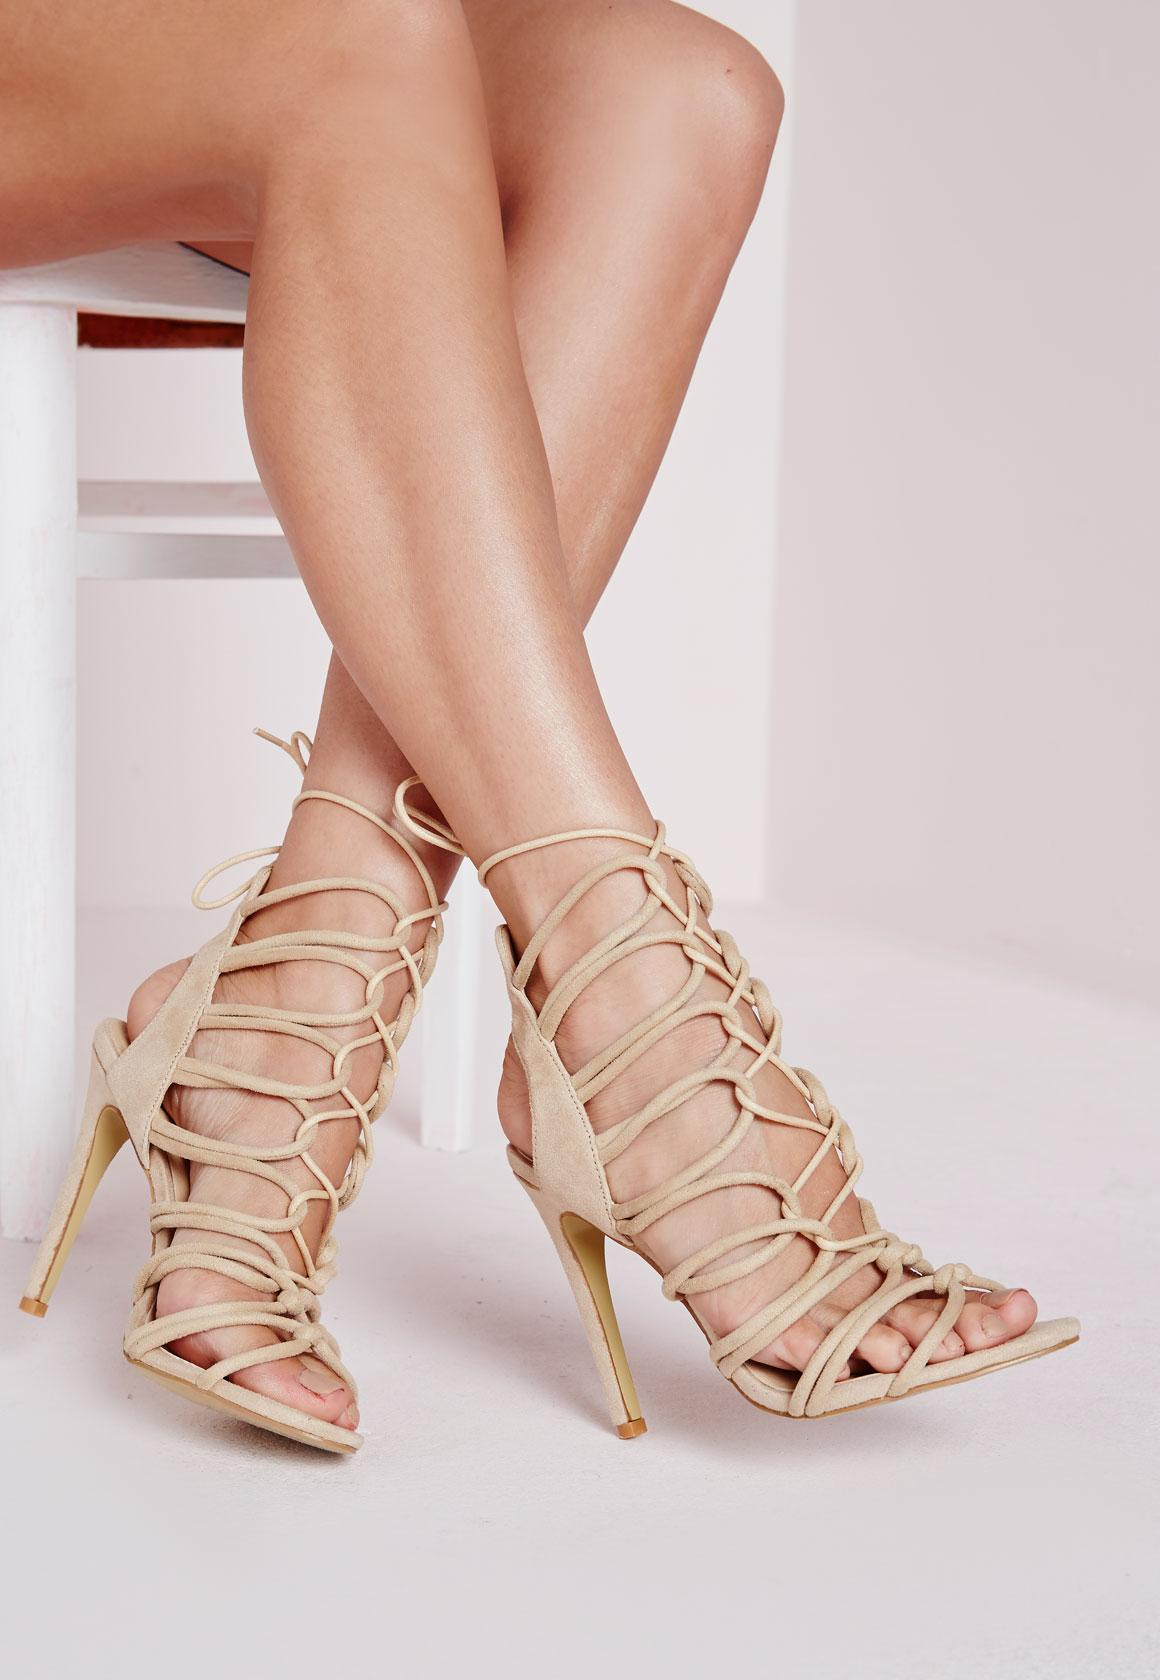 Rope Lace Up Heeled Sandals Nude - Shoes - High Heels - Missguided